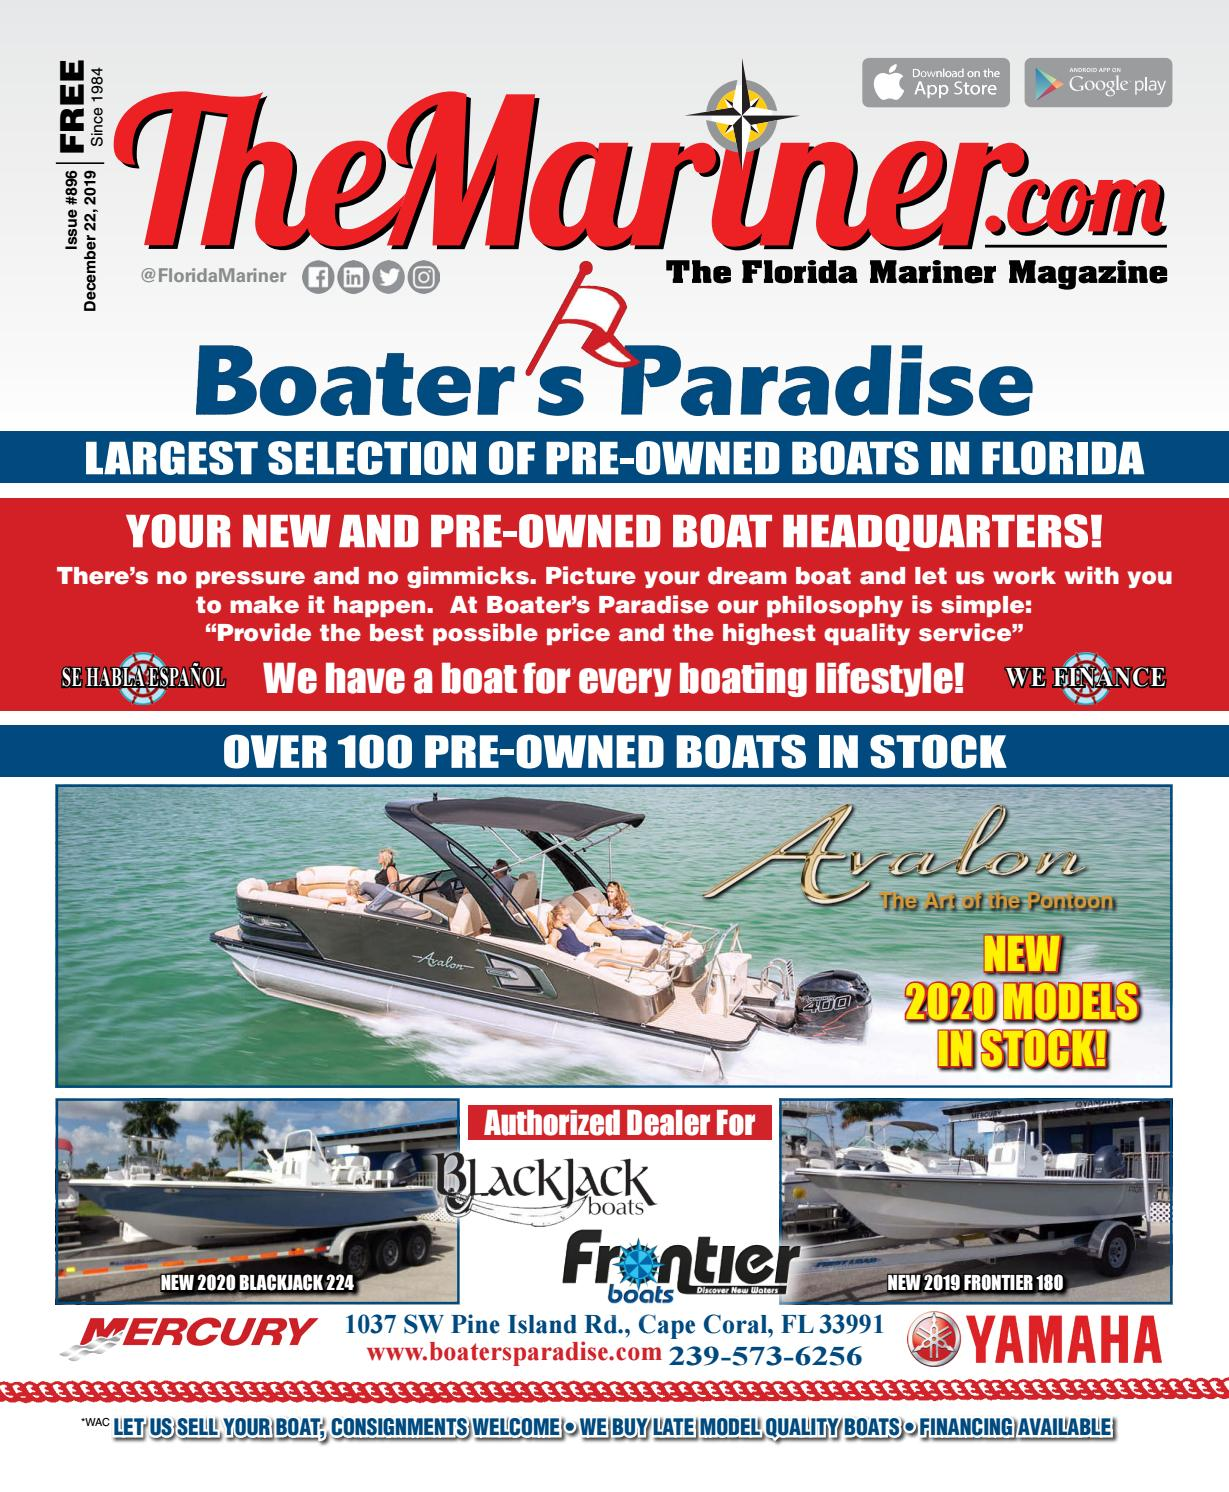 2011 Blackjack 224 Sale